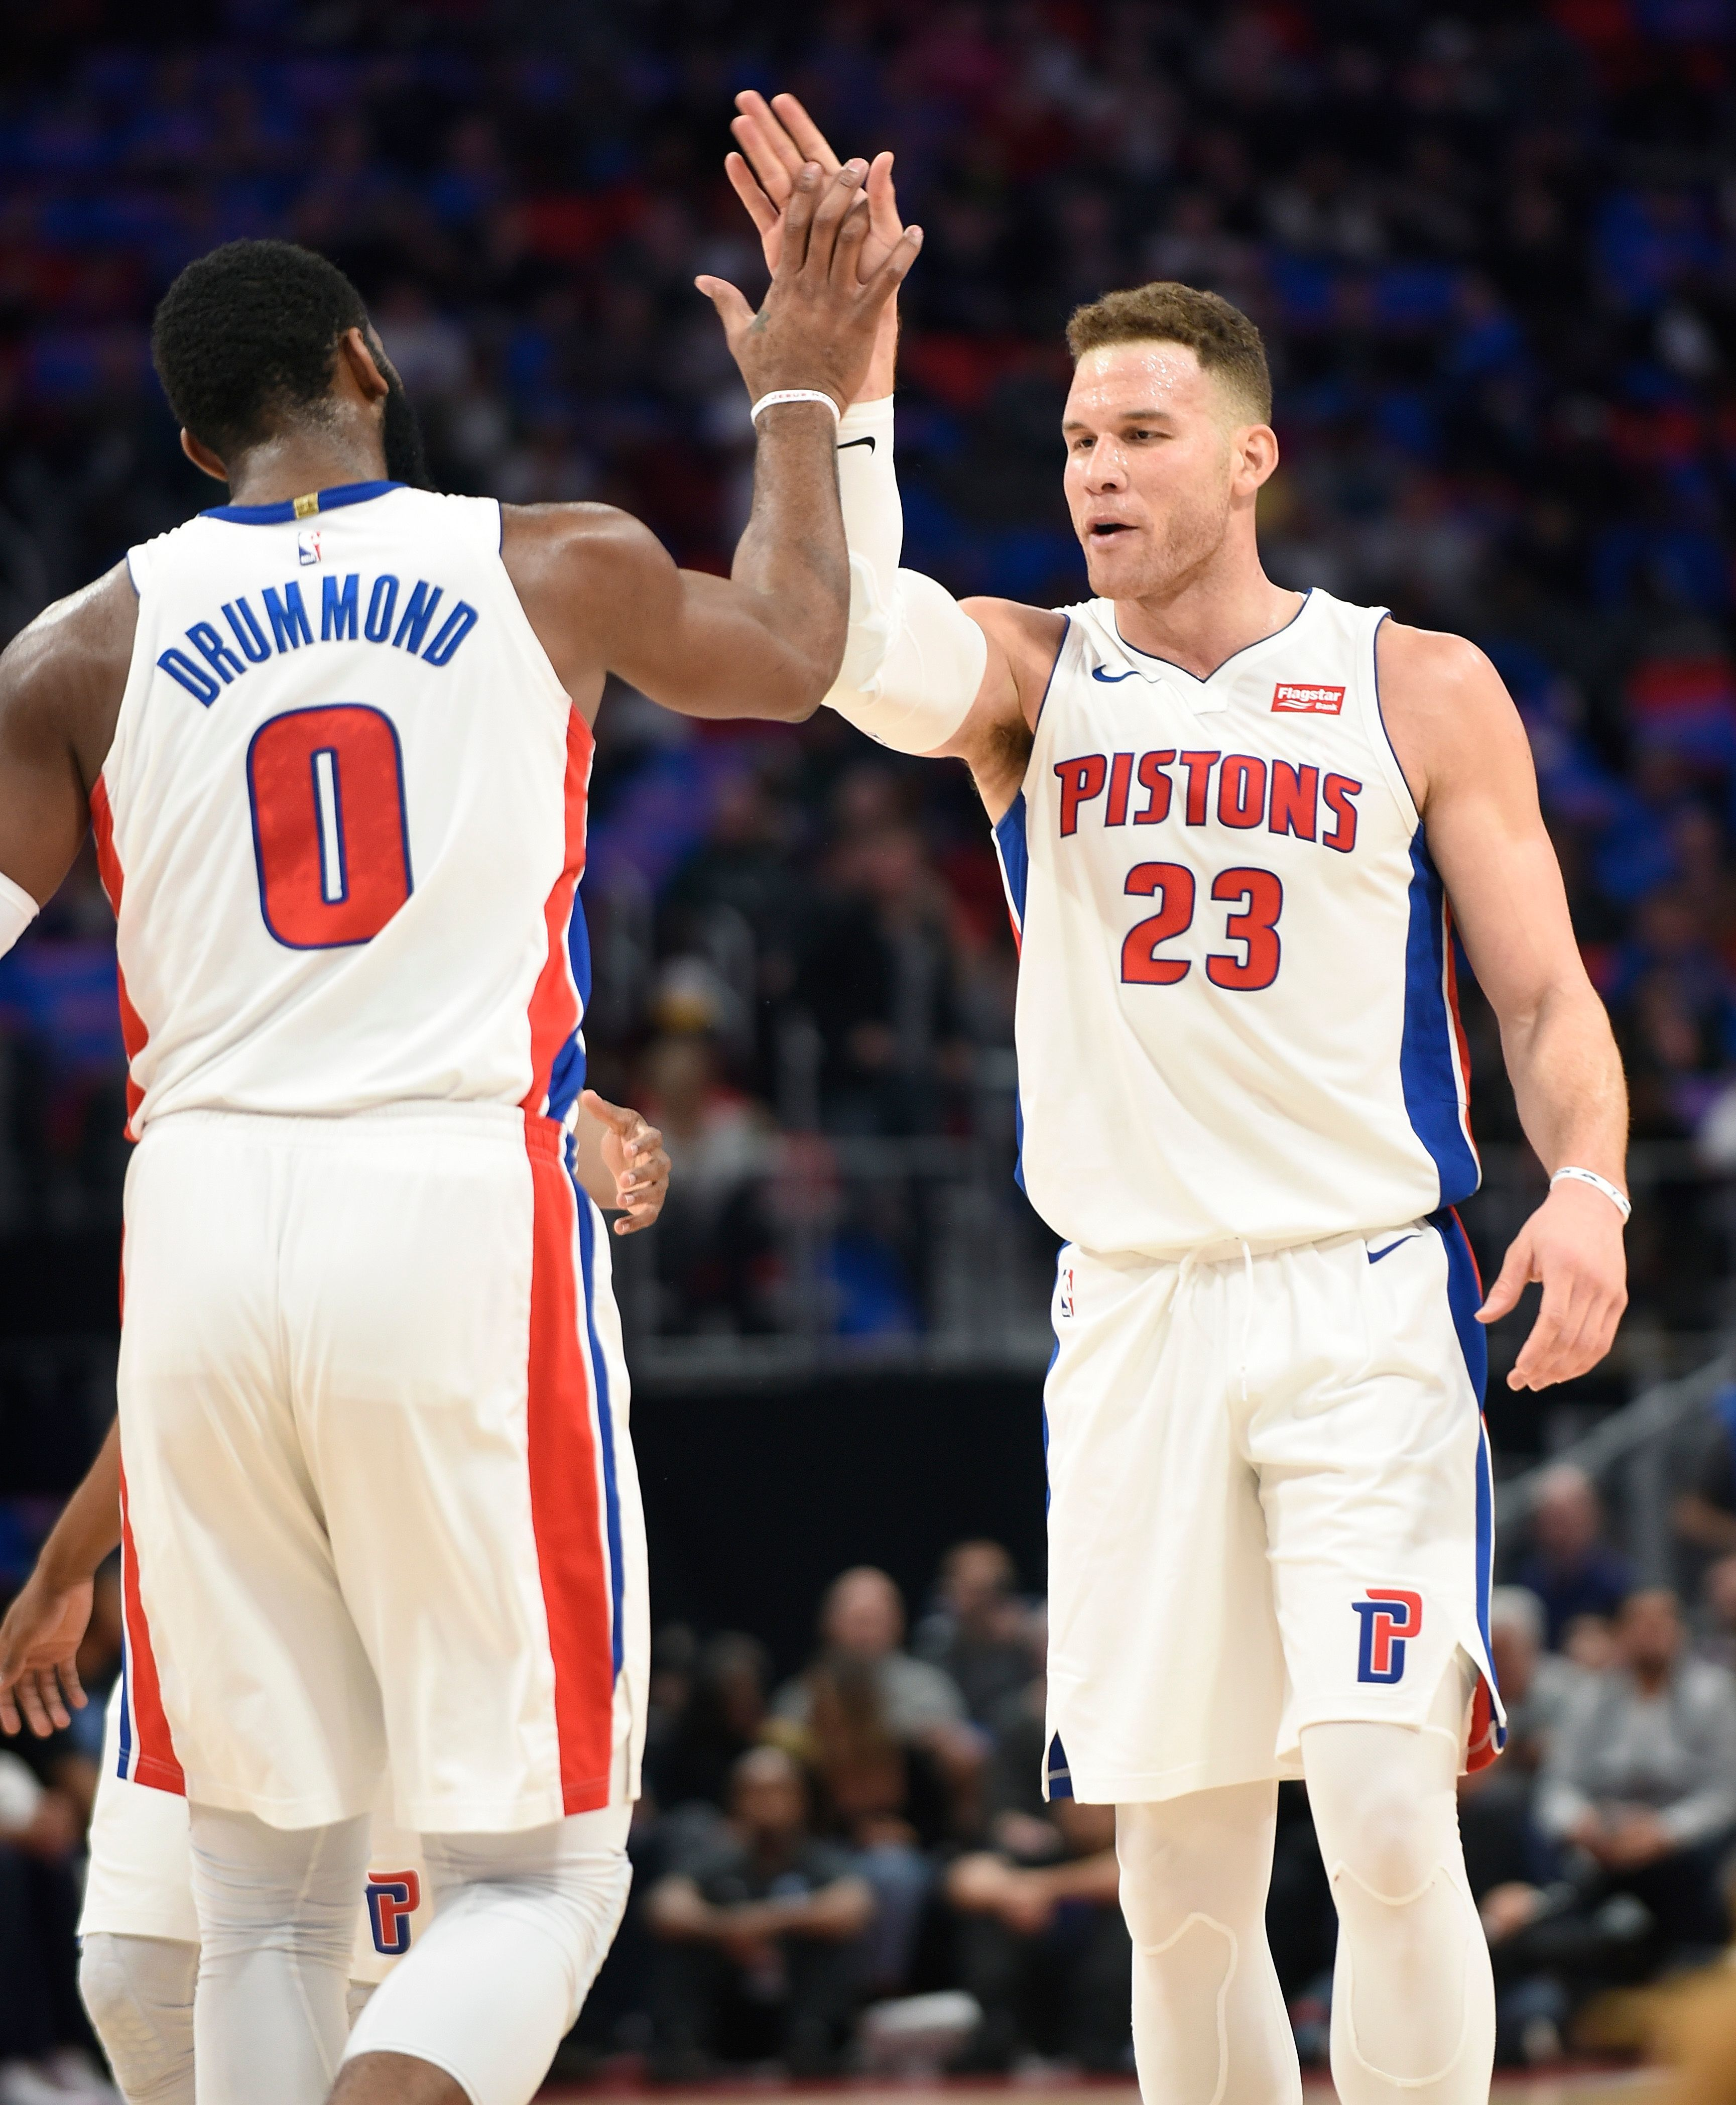 The Pistons brought in some star power with the addition of Blake Griffin after the all-star break, but the formidable front court of Andre Drummond and Griffin was not enough to propel the Pistons into the playoffs. Detroit finished the 2017-18 season with a 39-43 record, ninth in the Eastern Conference.